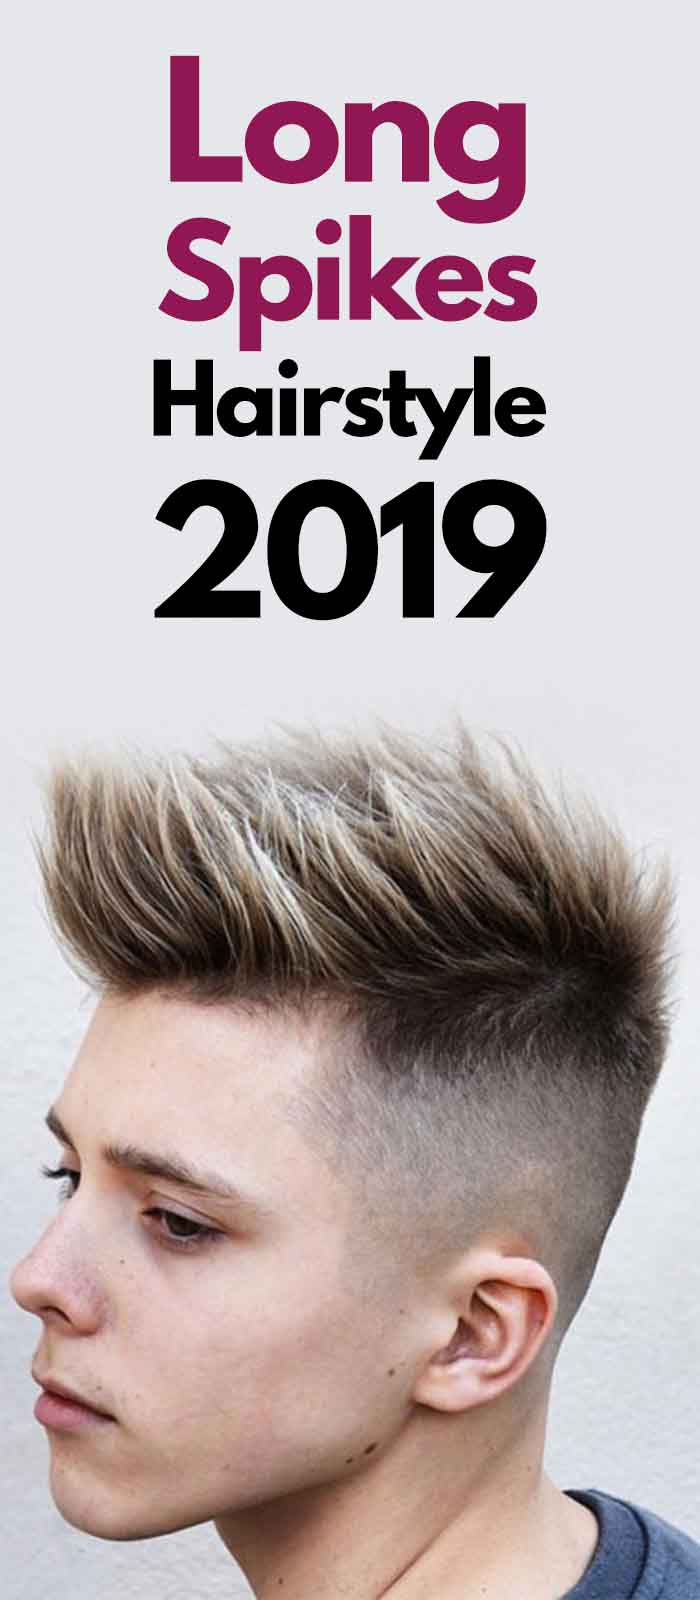 Long Spikes Hairstyle 2019